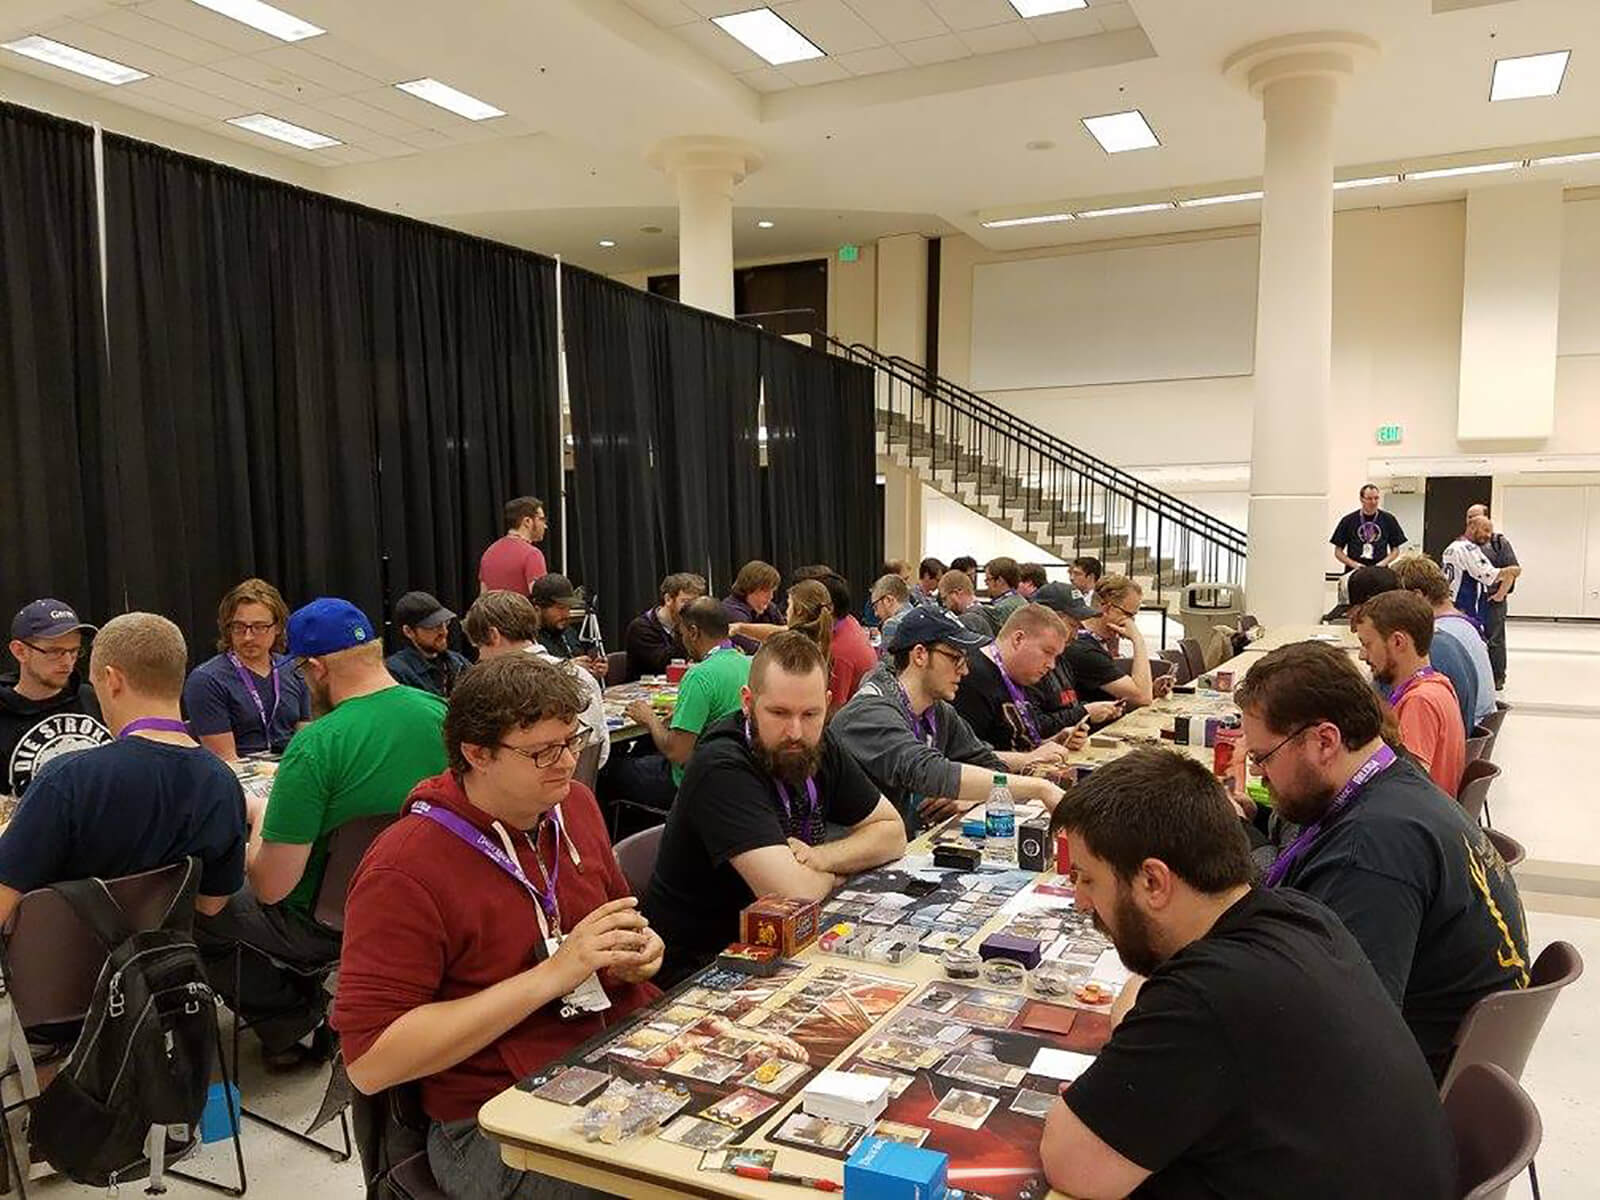 Picture from previous Evergreen Tabletop Expo featuring attendees playing board games